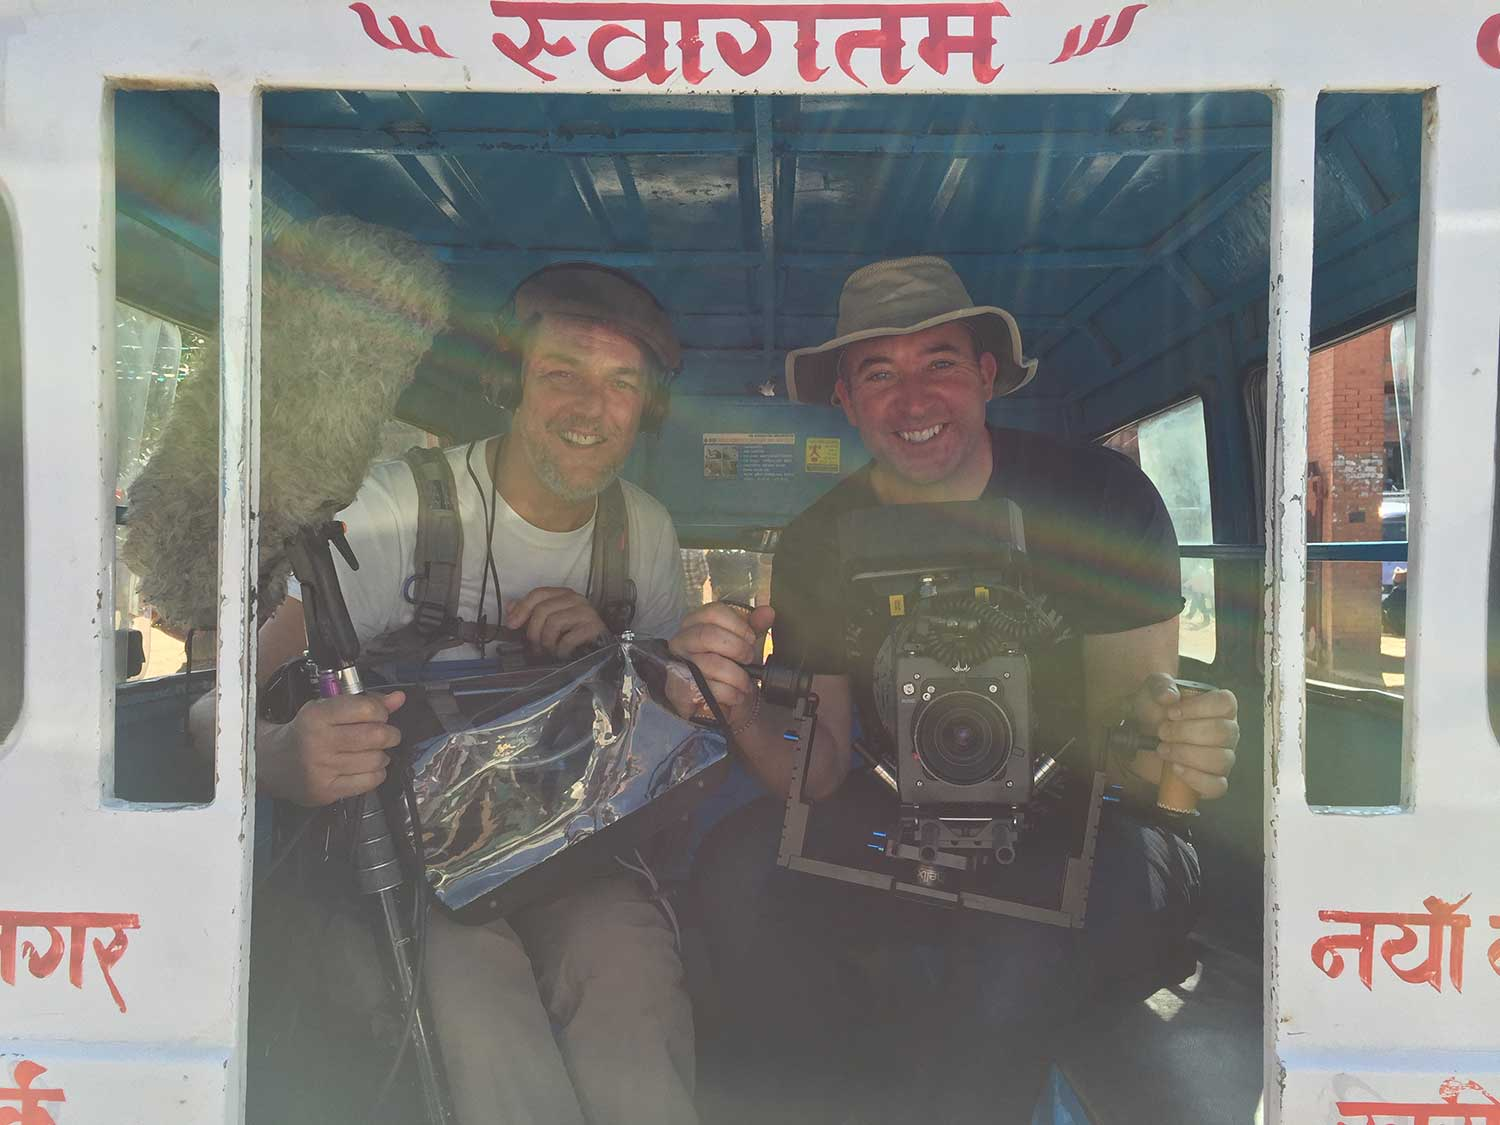 DoP Johann Perry and his sound man on-board a Nepalese Tuk-Tuk getting ready to shoot Beckham among the 1,000s that turned up.